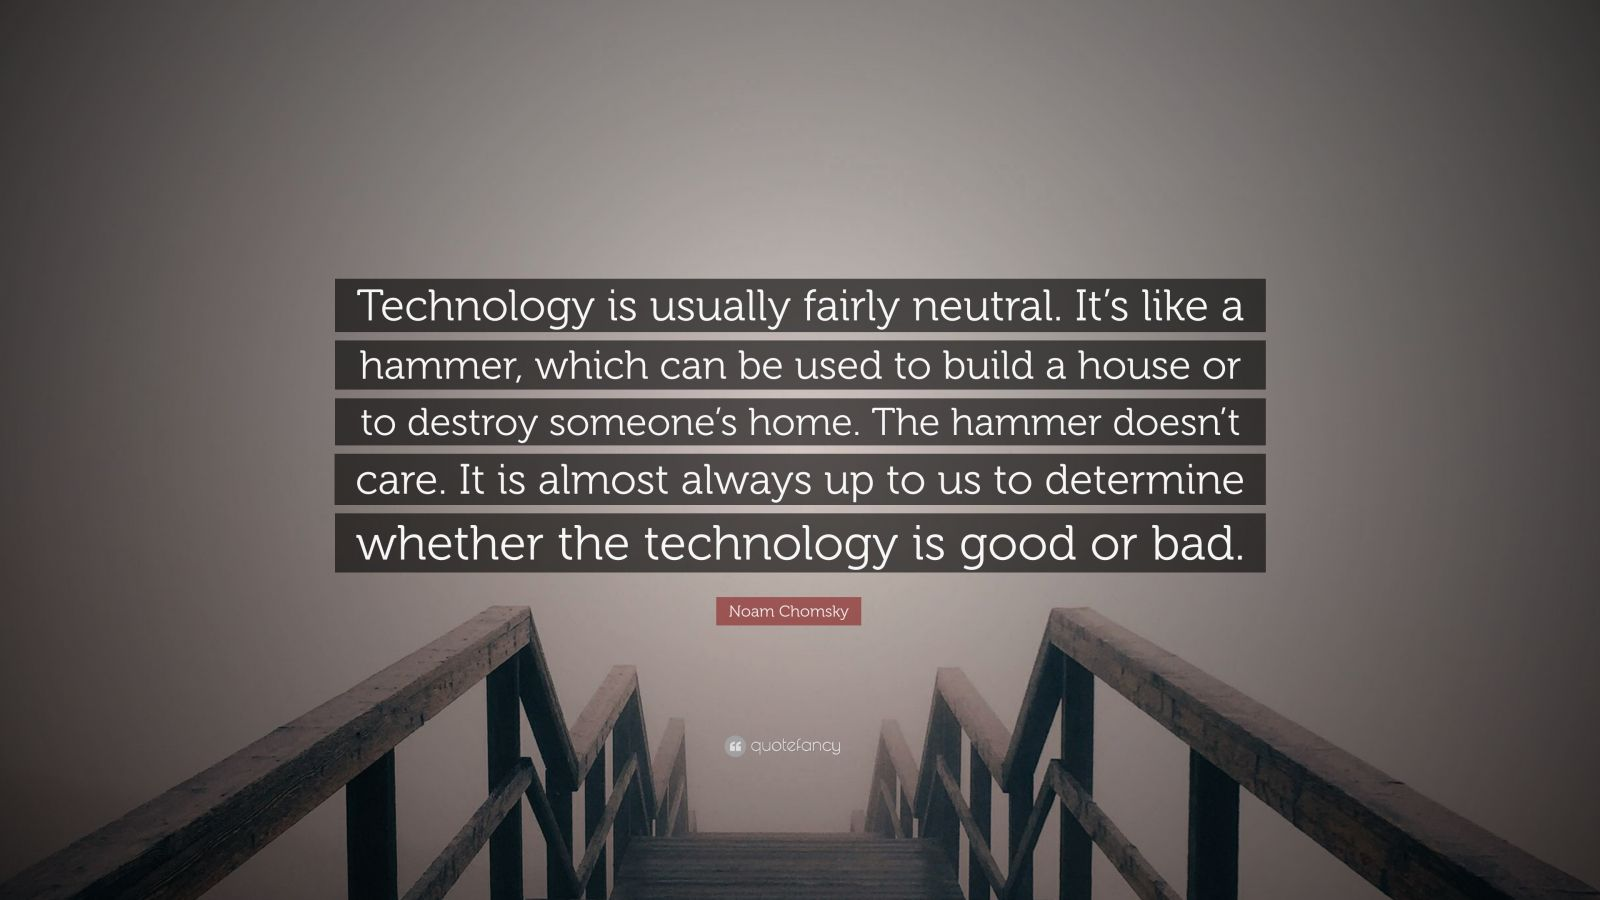 """Noam Chomsky Quote: """"Technology is usually fairly neutral. It's like a hammer, which can be used to build a house or to destroy someone's home. The hammer doesn't care. It is almost always up to us to determine whether the technology is good or bad."""""""